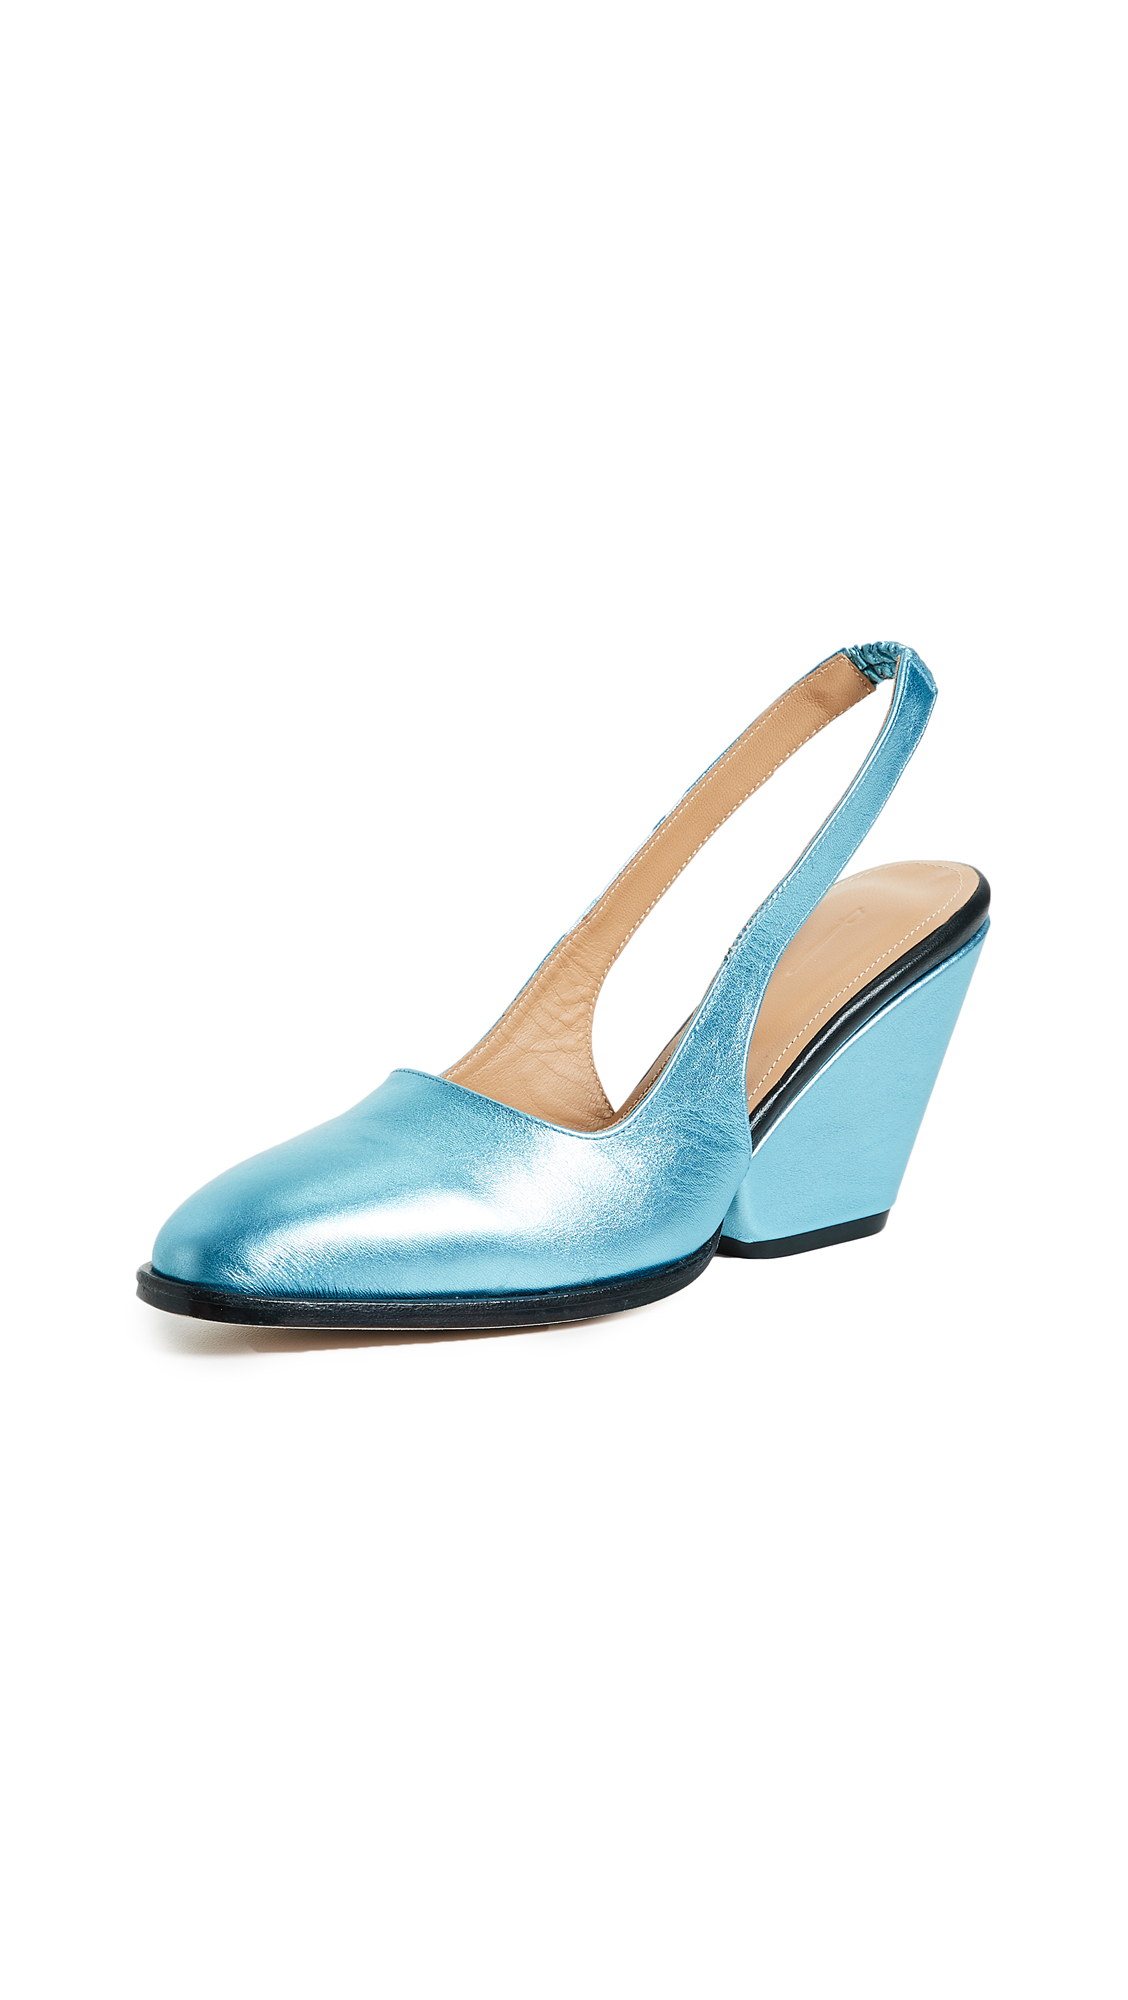 The Palatines Imago Slingback Pumps - Pool